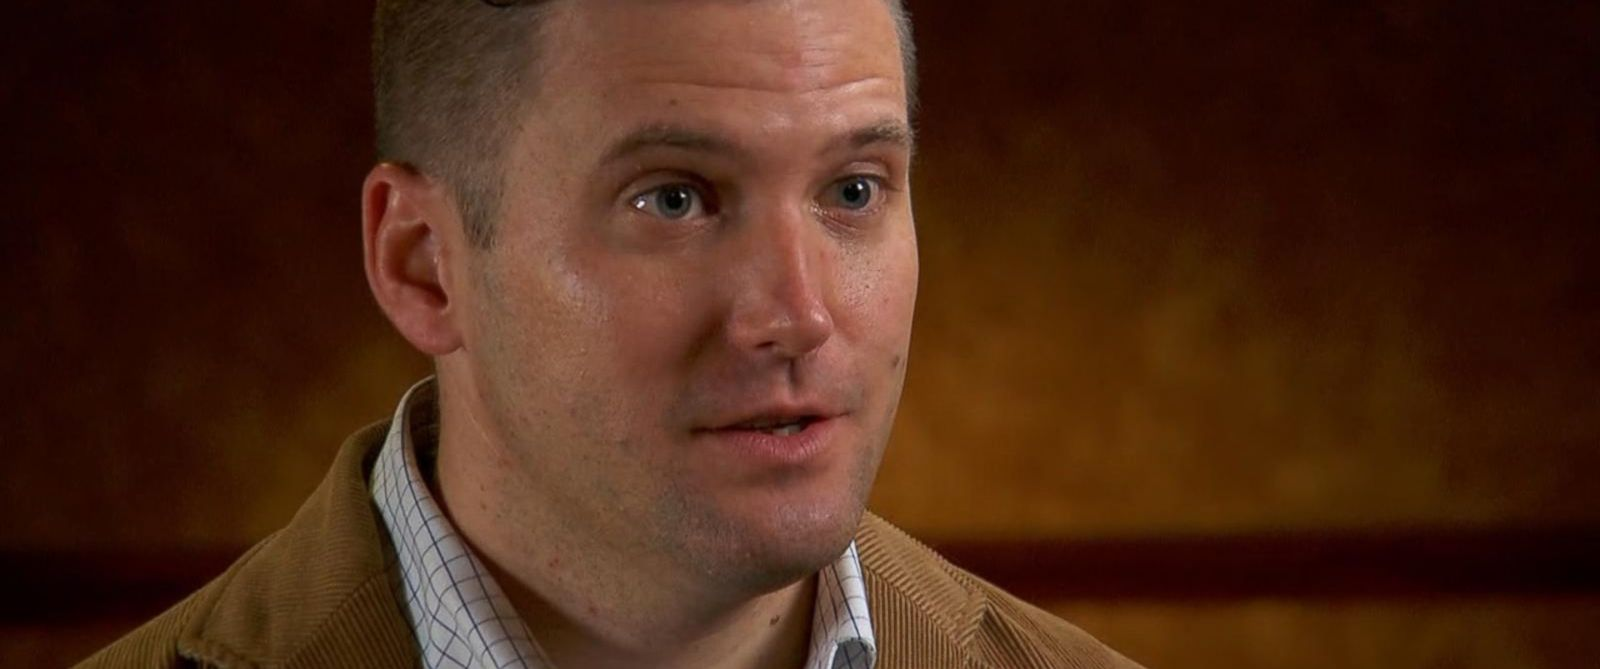 White Nationalist Richard Spencer on Being Confronted by Protestors at Texas A&M Appearance